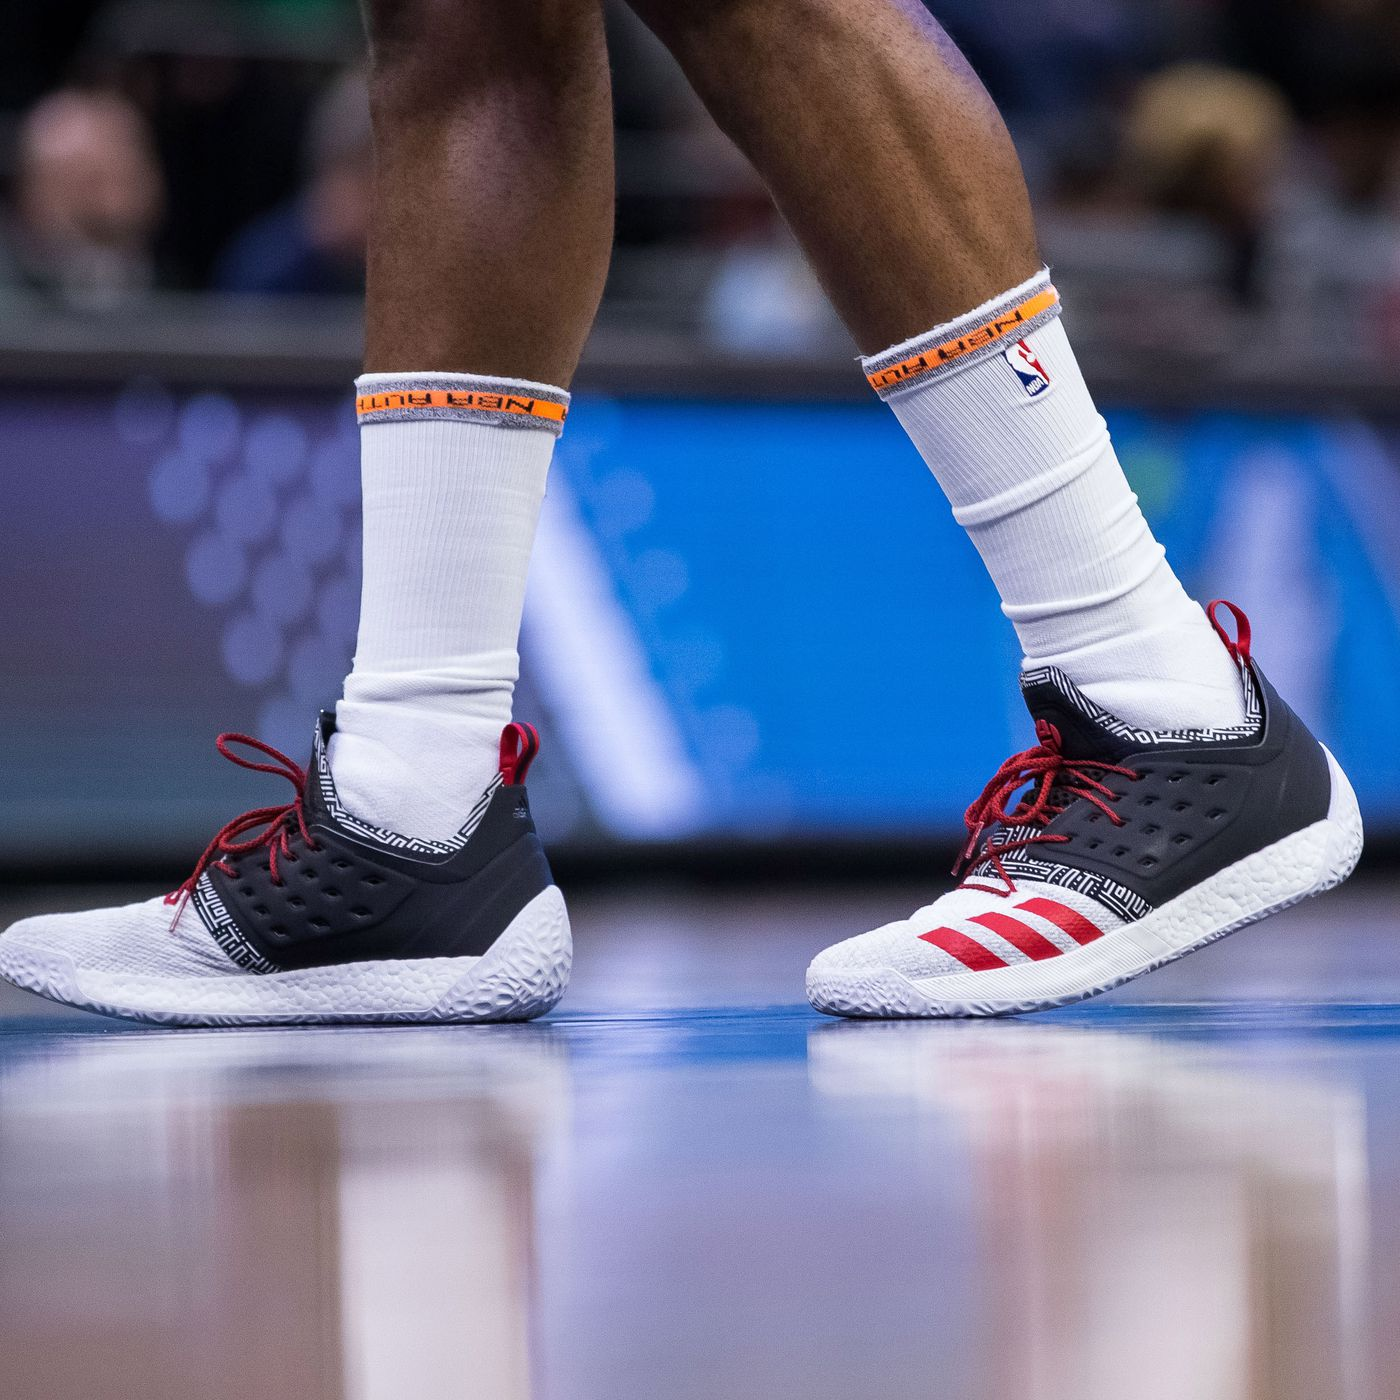 428470c43b7fc Not Your Average Review  Adidas Harden Vol. 2 - Peachtree Hoops